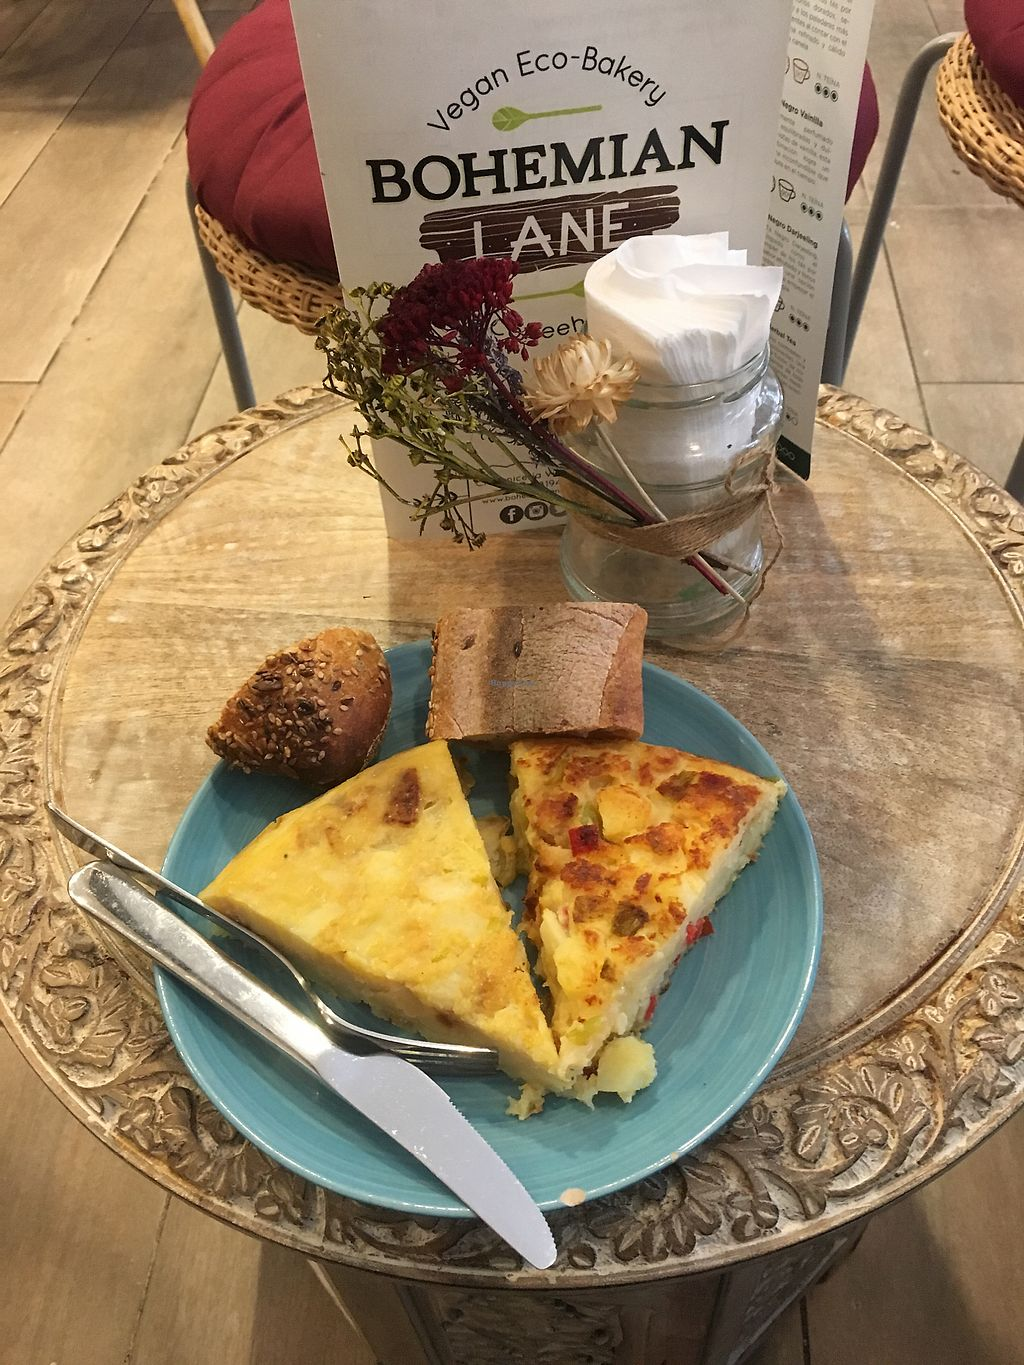 """Photo of Bohemian Lane  by <a href=""""/members/profile/MissRadish"""">MissRadish</a> <br/>Tasty Tortilla! <br/> July 6, 2017  - <a href='/contact/abuse/image/54543/277136'>Report</a>"""